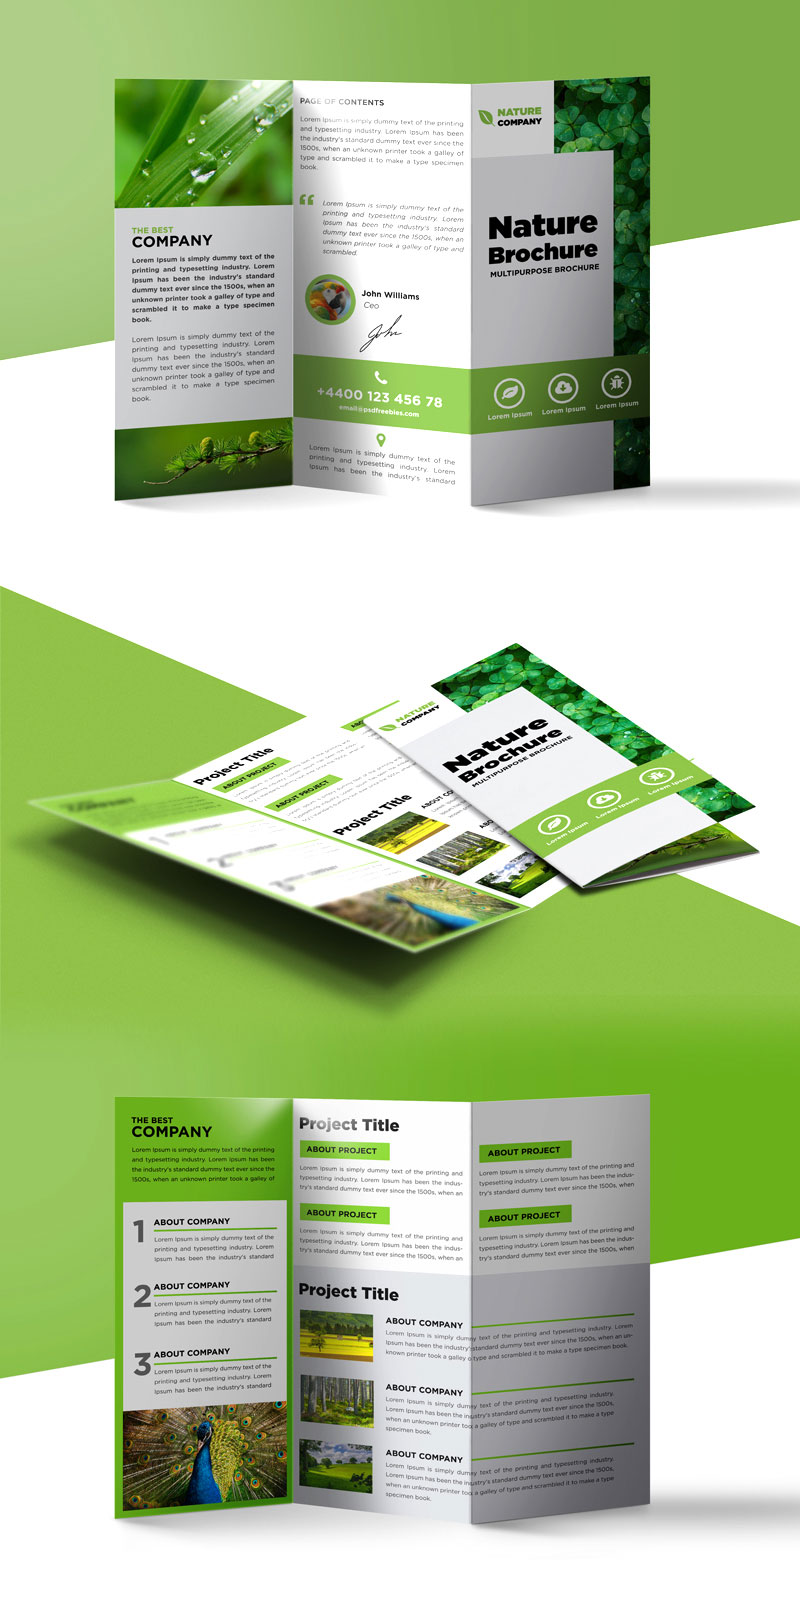 Nature tri fold brochure template free psd for Tri fold brochure template photoshop free